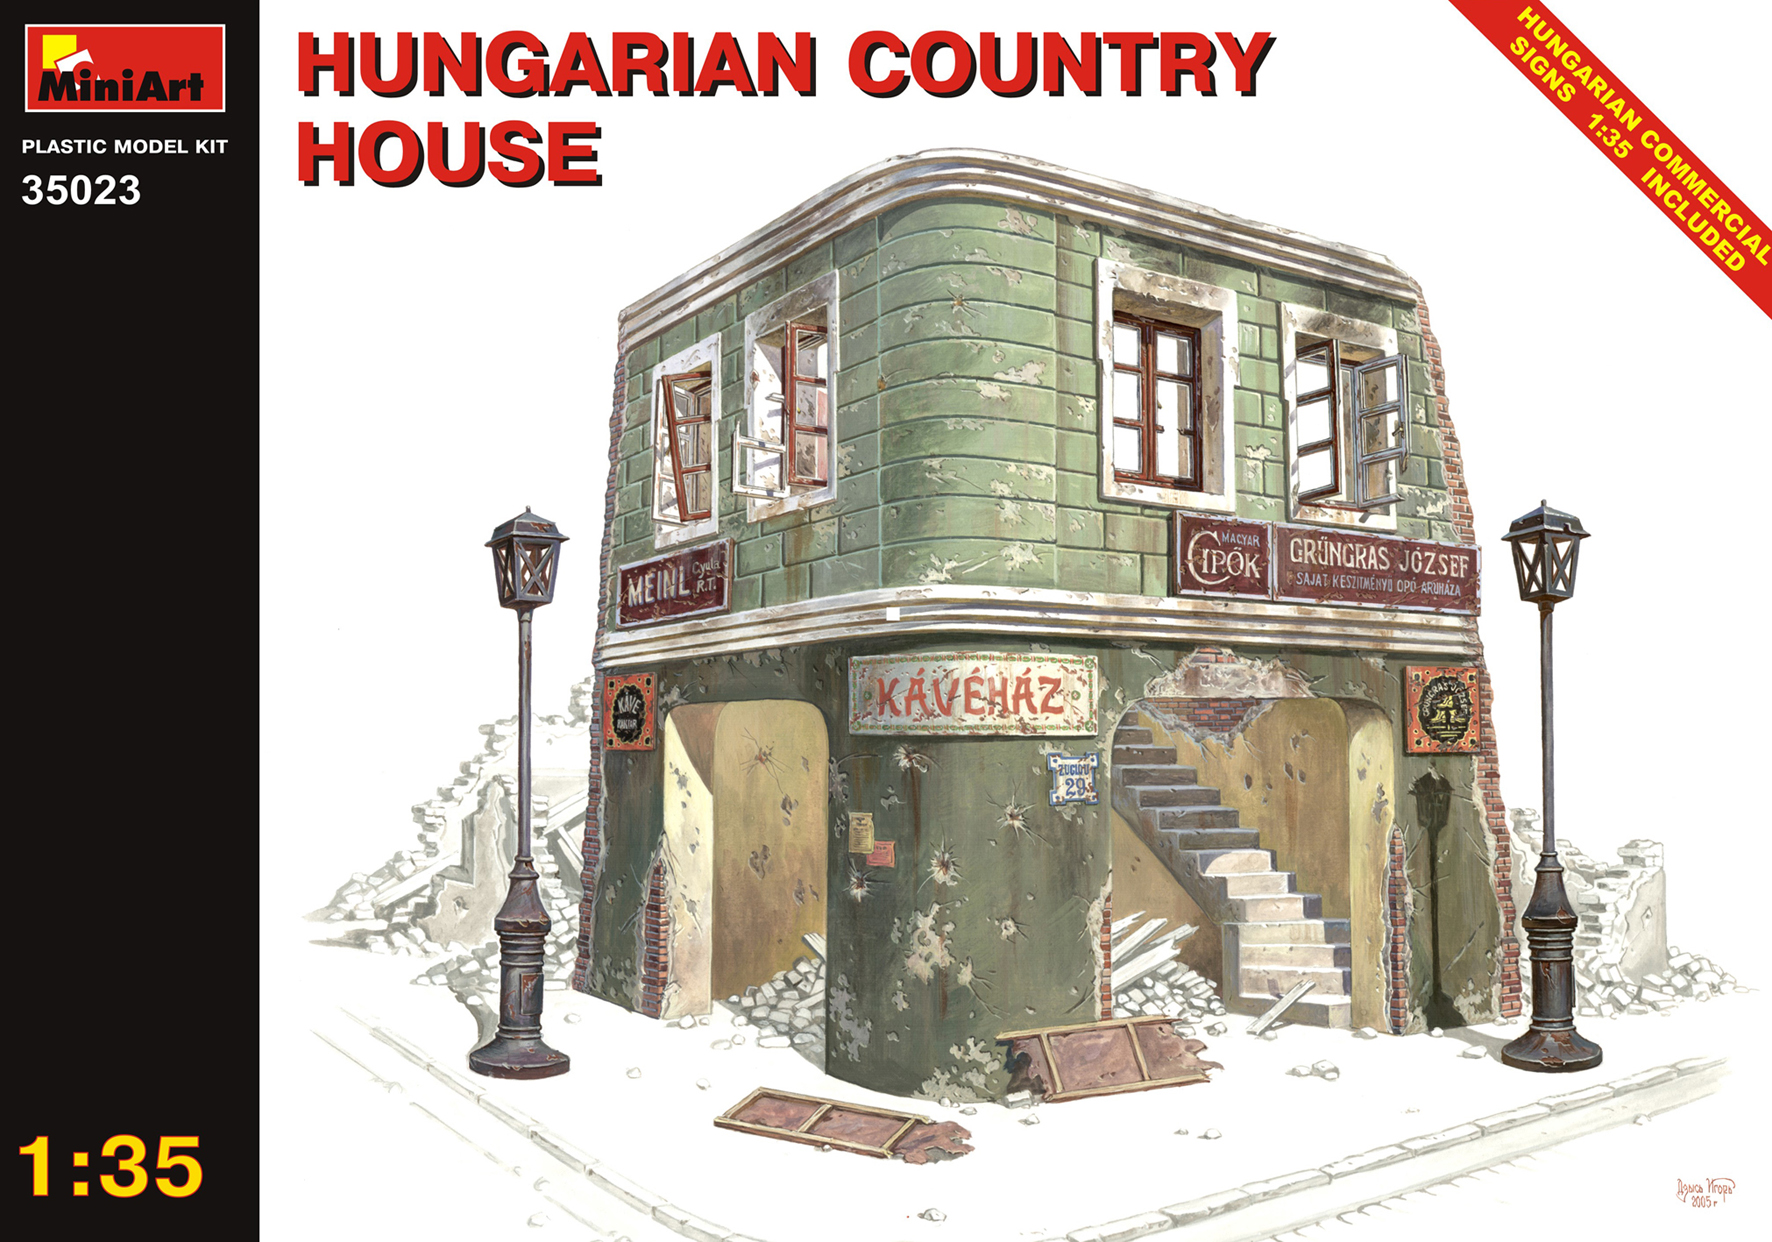 35023 HUNGARIAN COUNTRY HOUSE